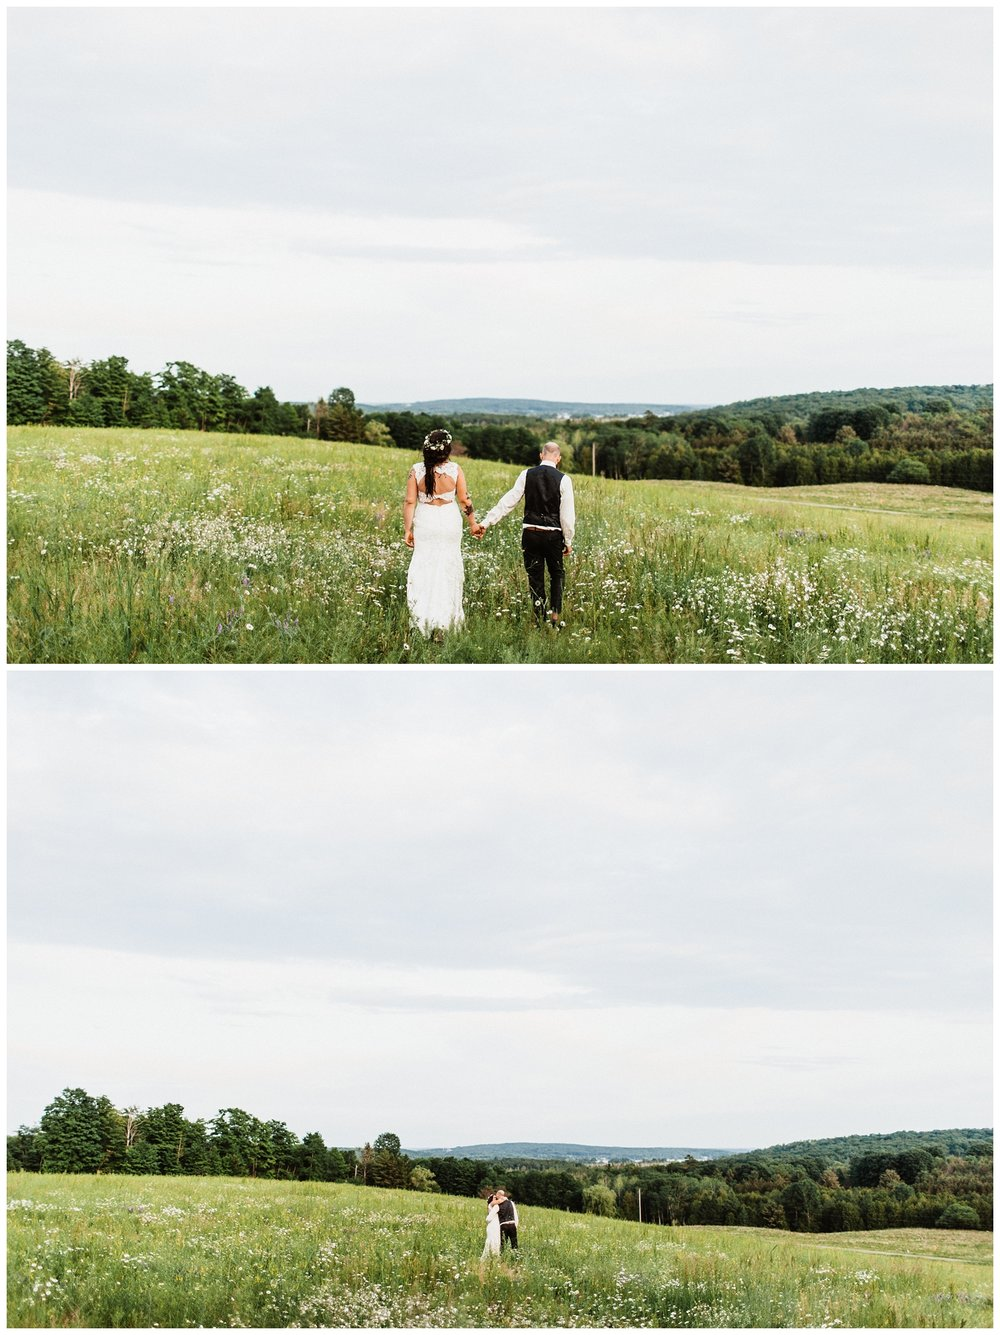 Northern_Michigan_Vineyard_Wedding_Nashville_Wedding_Photographer0114.jpg